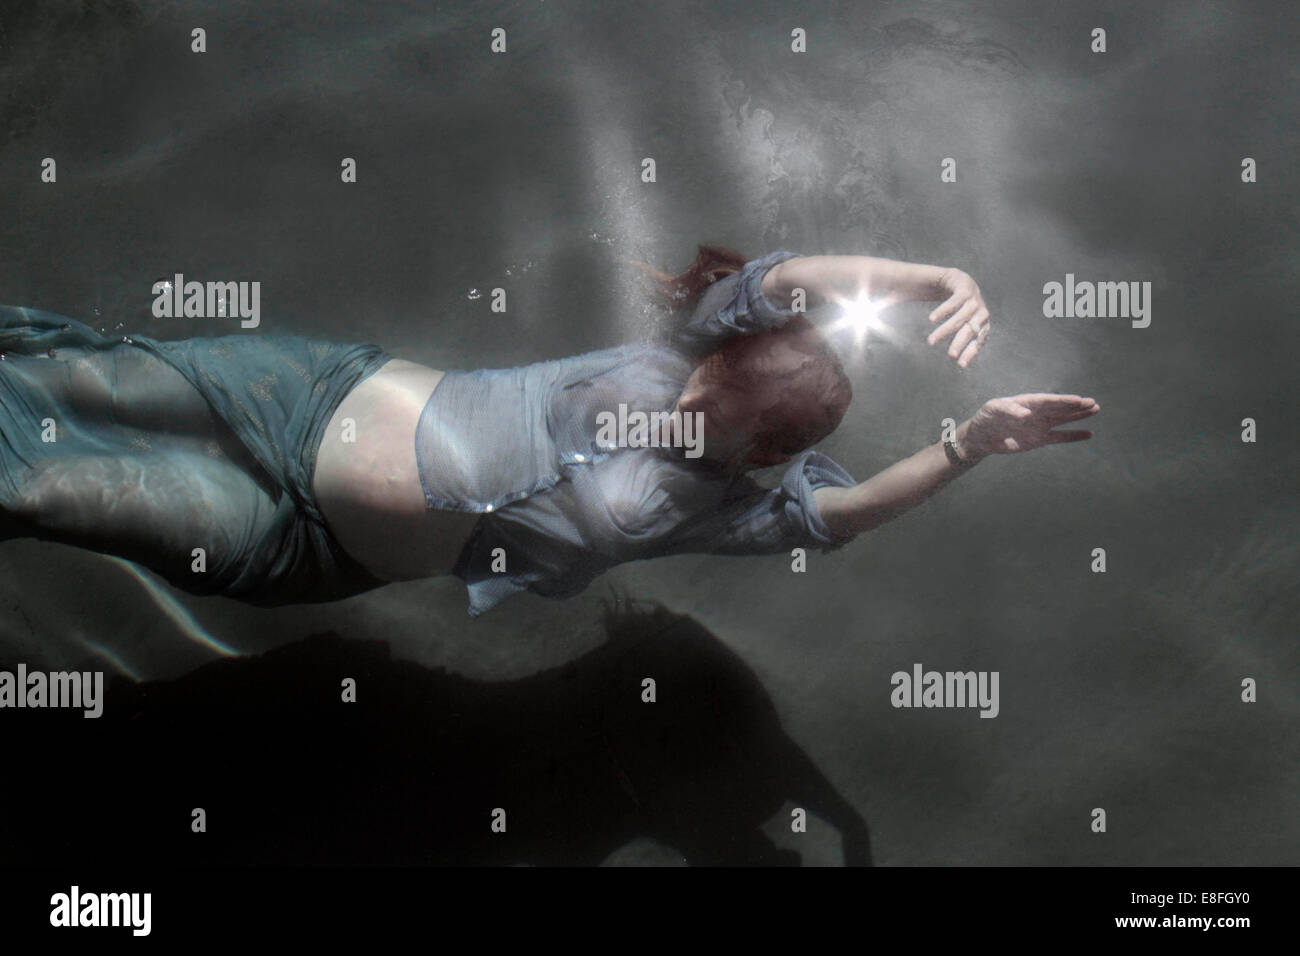 Fully clothed Pregnant woman swimming underwater - Stock Image